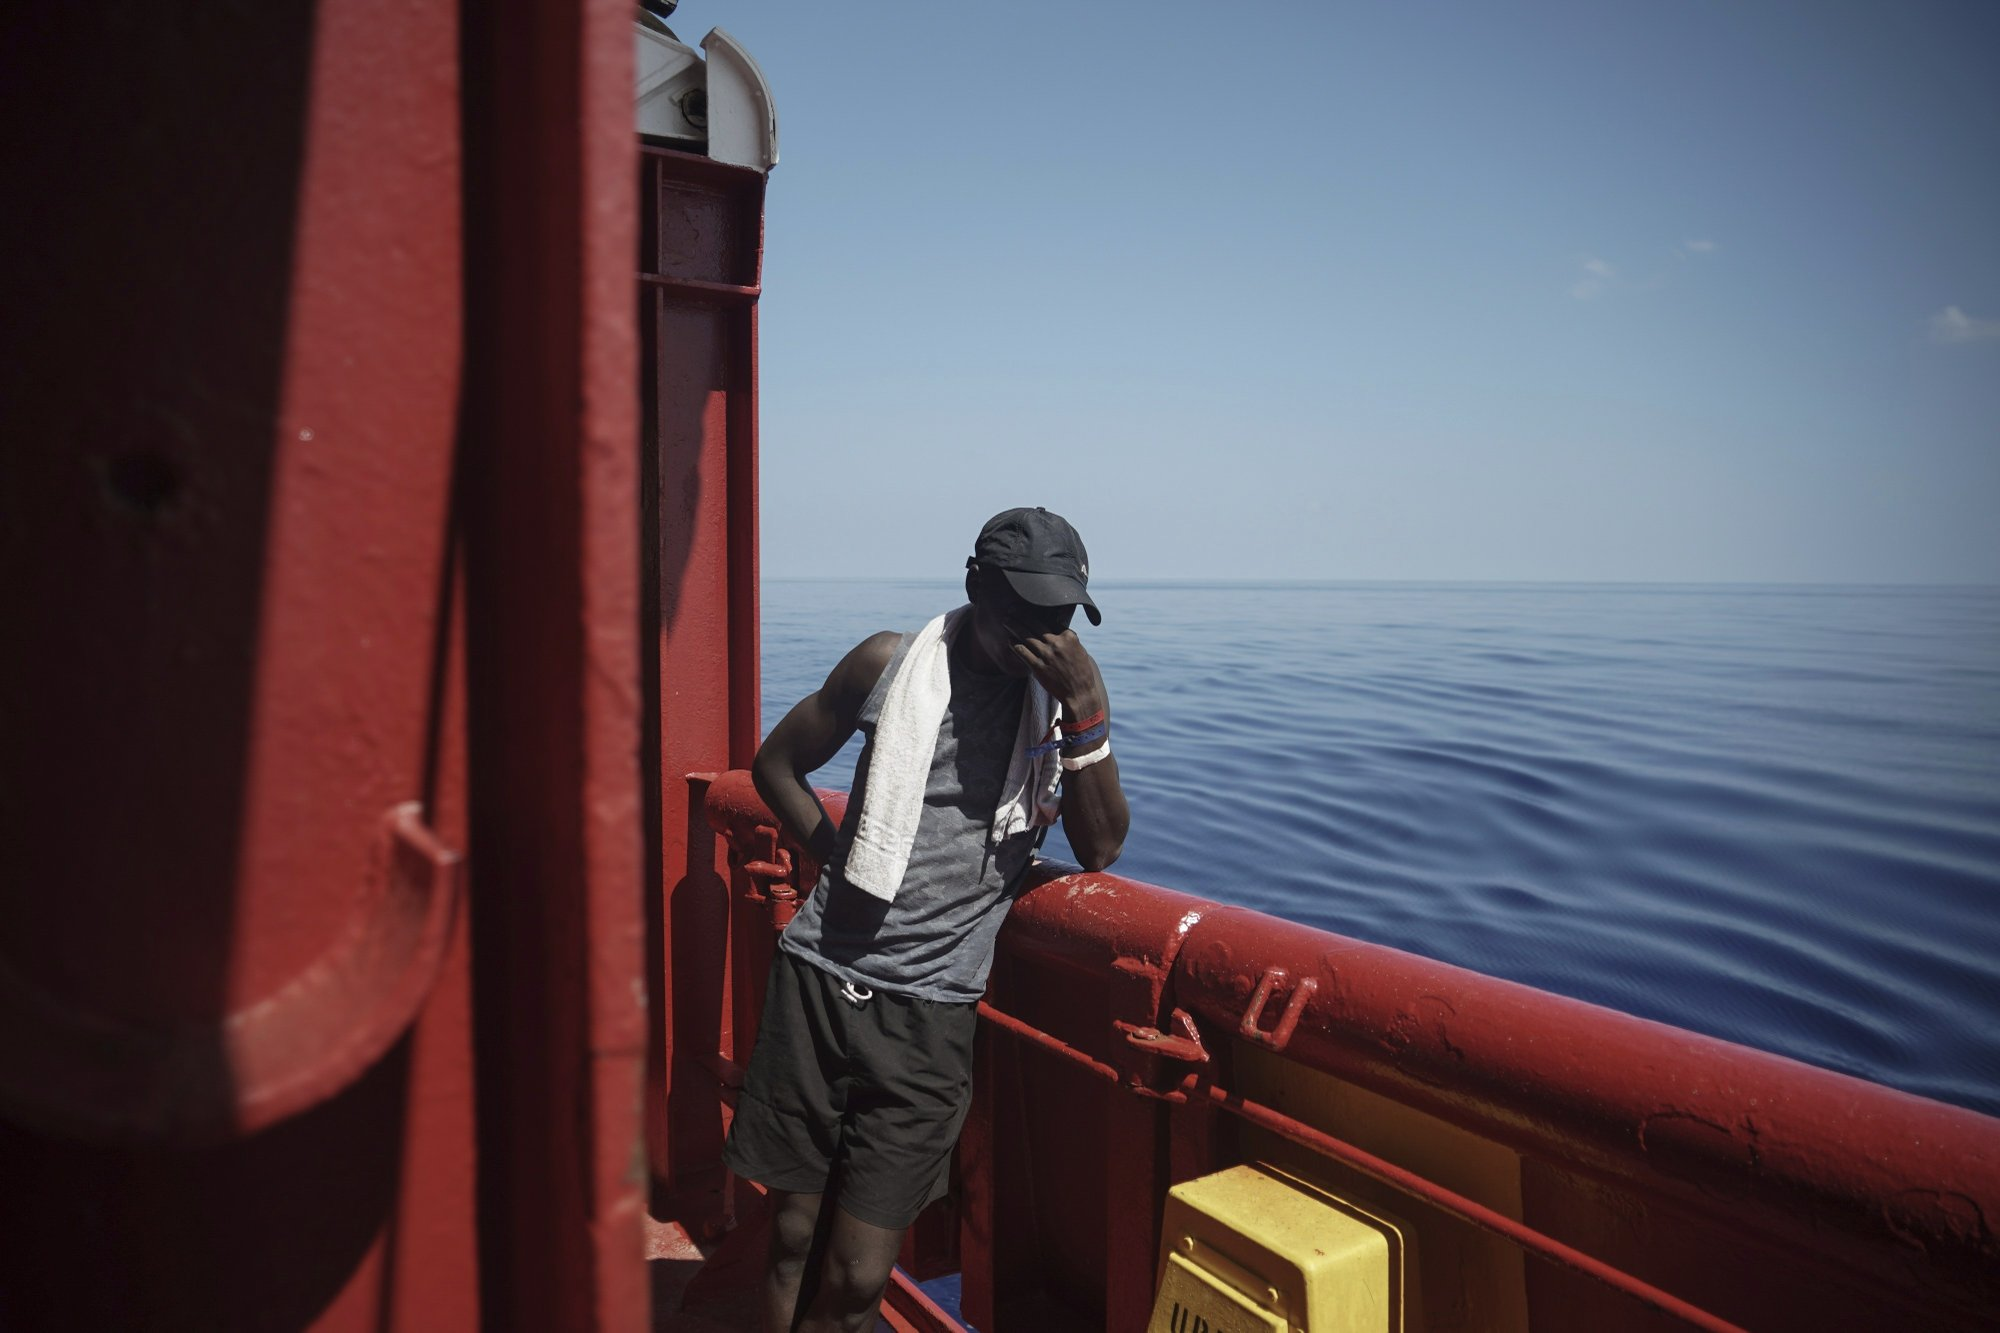 In this Sept. 14, 2019 photo, Amidou from Cameroon touches his face aboard the Ocean Viking humanitarian ship as it sails to Italy in Mediterranean Sea. He was rescued from an overcrowded rubber boat north of Libya as he tried to cross to Europe. While in Libya he spent five weeks in various parts of the Zawiya detention center where he says he was forced to unearth weapons in the desert. (AP Photo/Renata Brito)